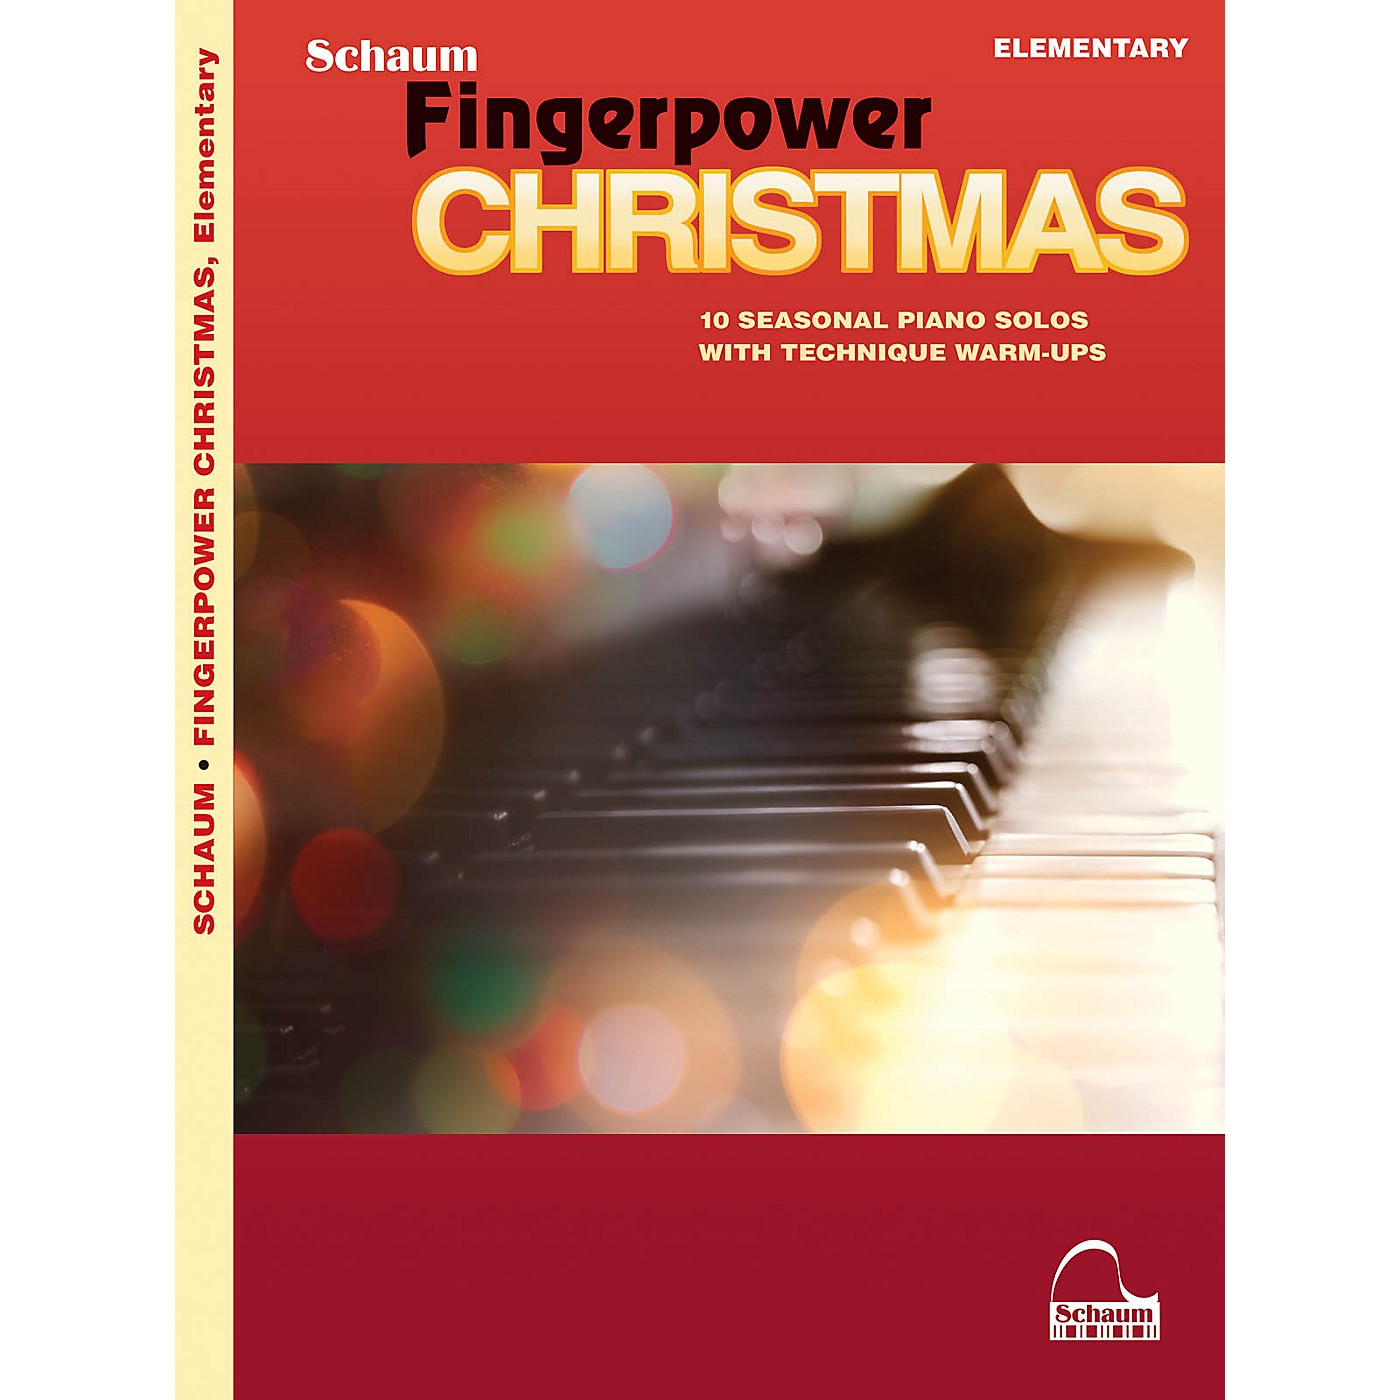 SCHAUM Fingerpower Christmas - 10 Seasonal Piano Solos with Technique Warm-Ups thumbnail